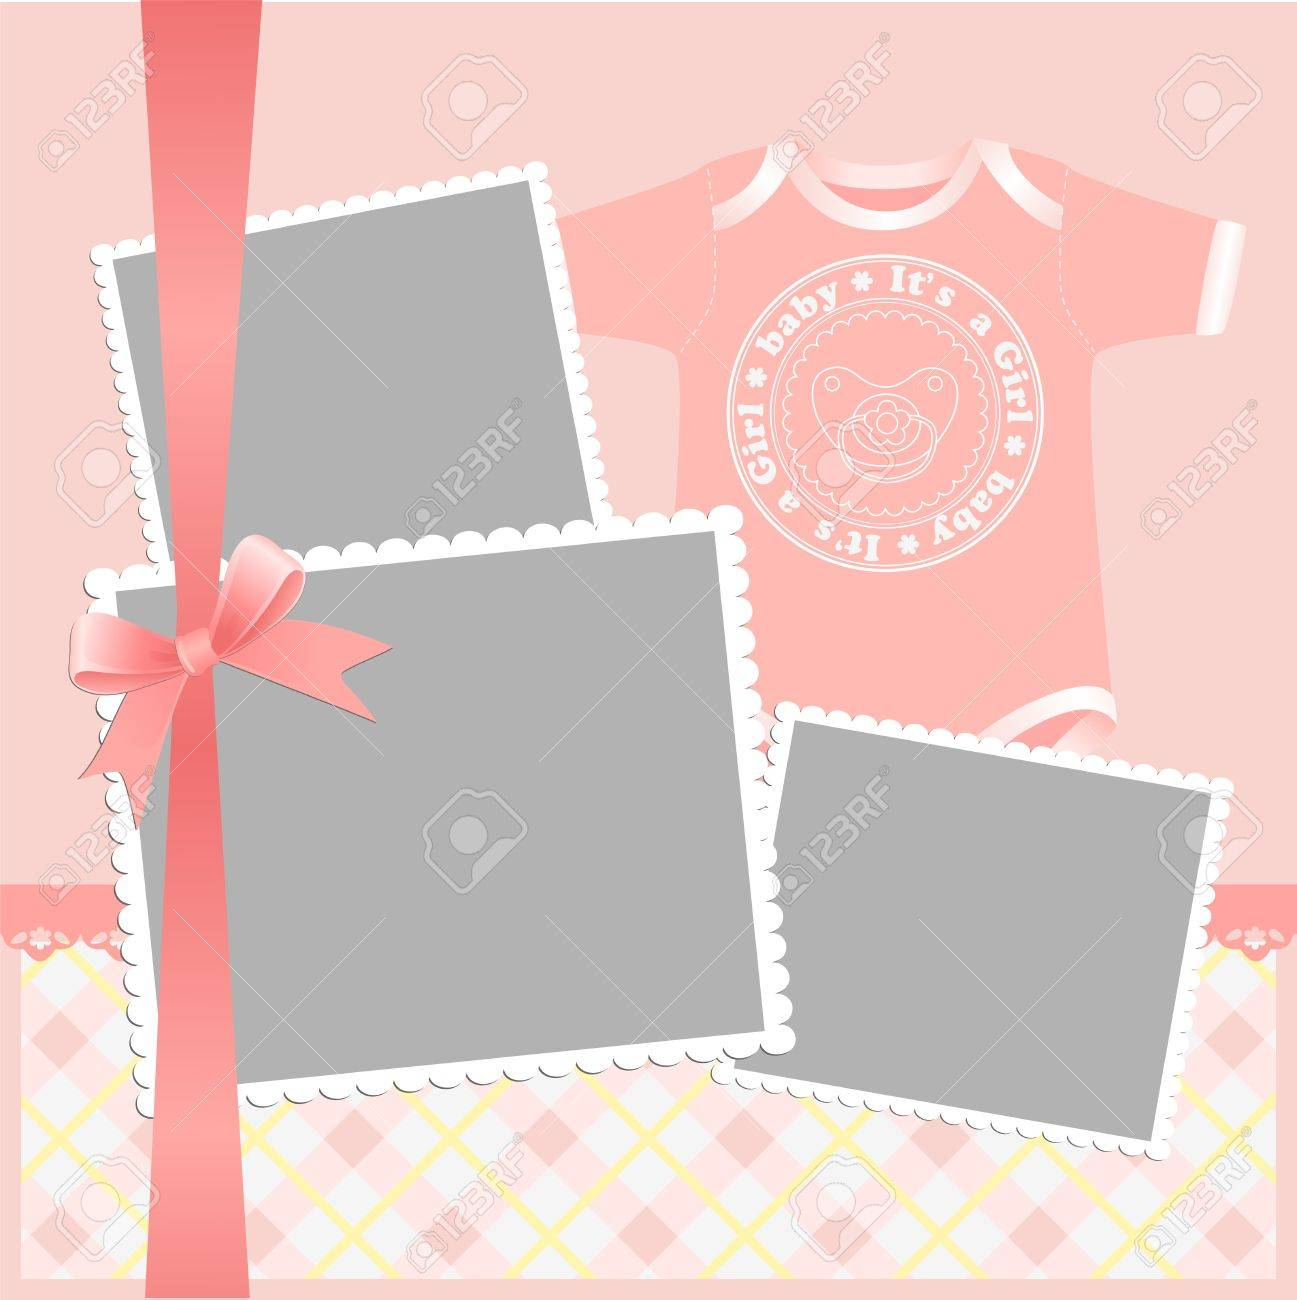 Cute template for baby's arrival announcement card or photo frame Stock Vector - 10475067